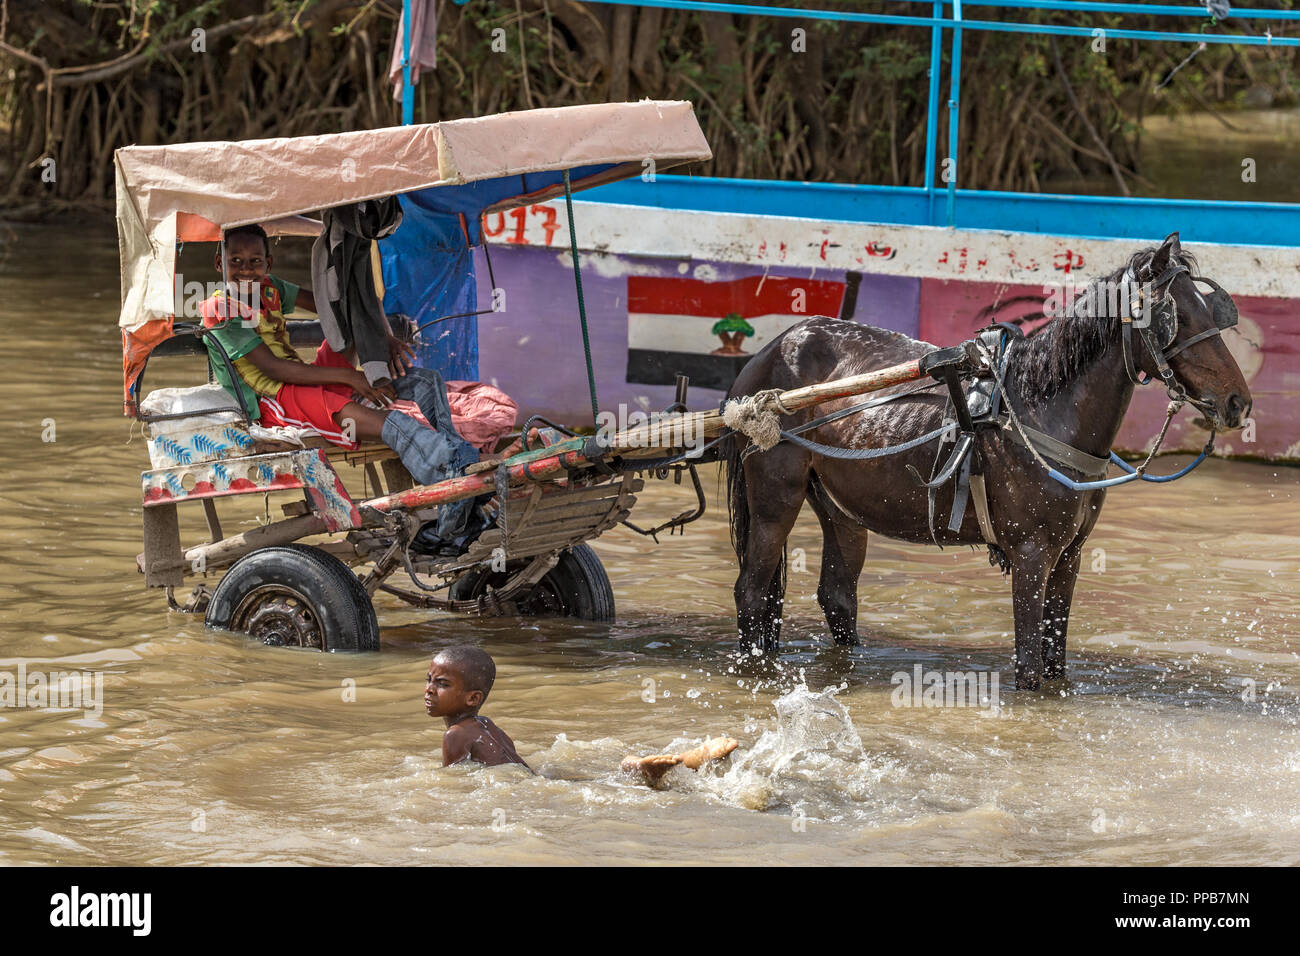 Cooling off, Lake Ziway, Ethiopia - Stock Image